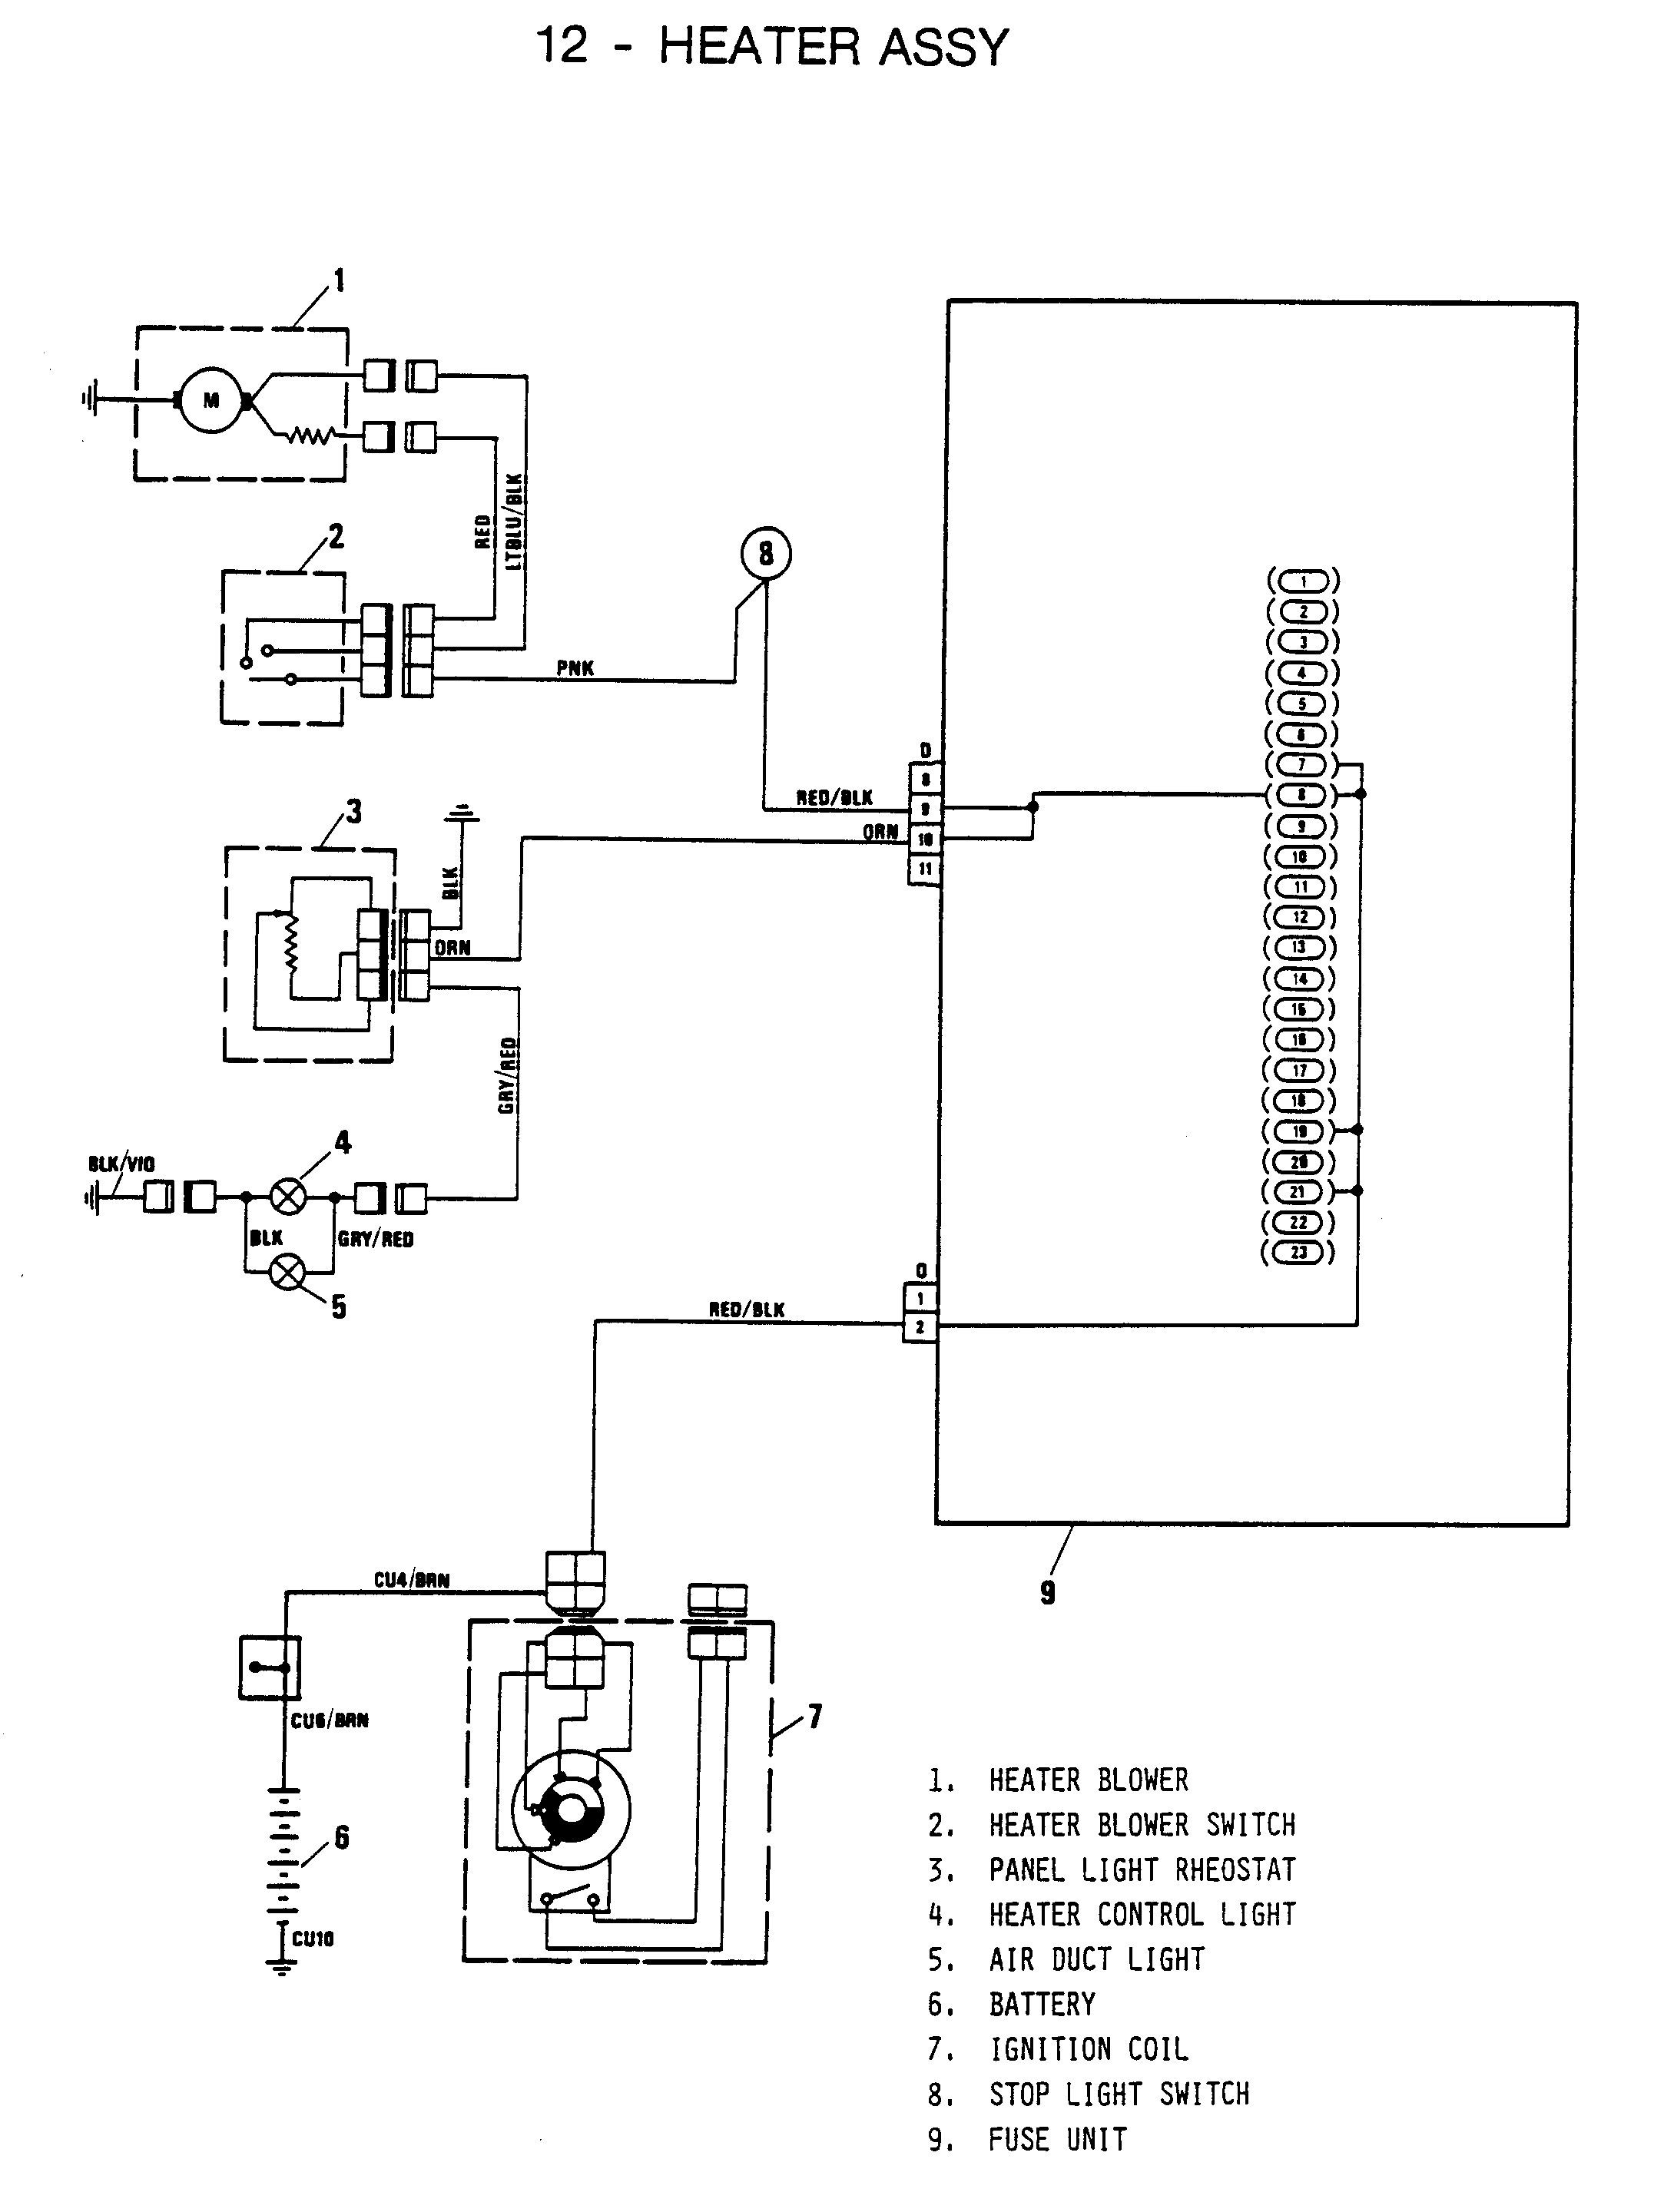 fiat x1 9 wiring diagram layout wiring diagrams u2022 rh laurafinlay co uk  Fiat Spider Wiring